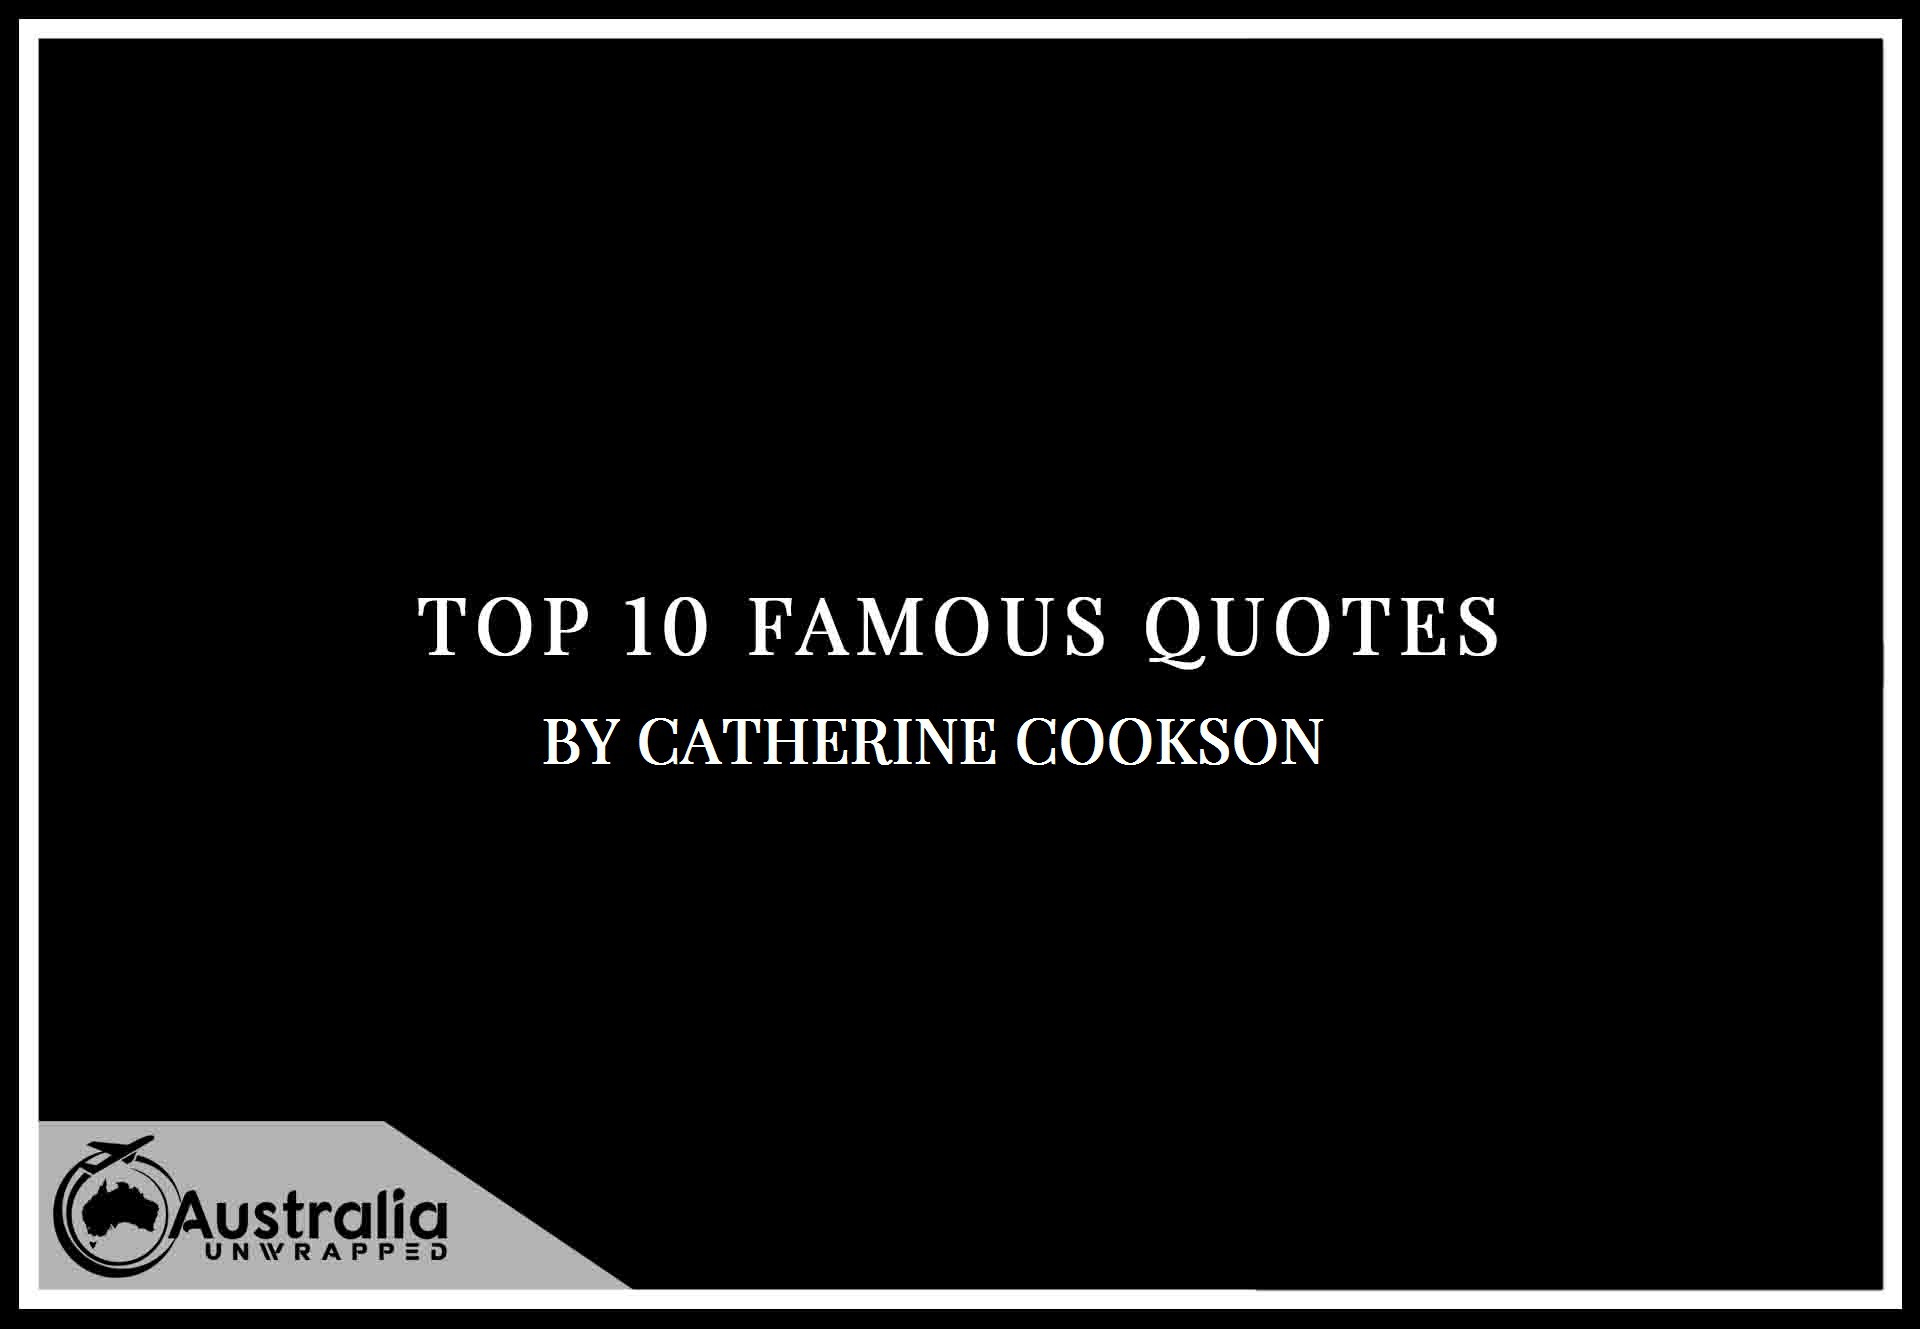 Catherine Cookson's Top 10 Popular and Famous Quotes